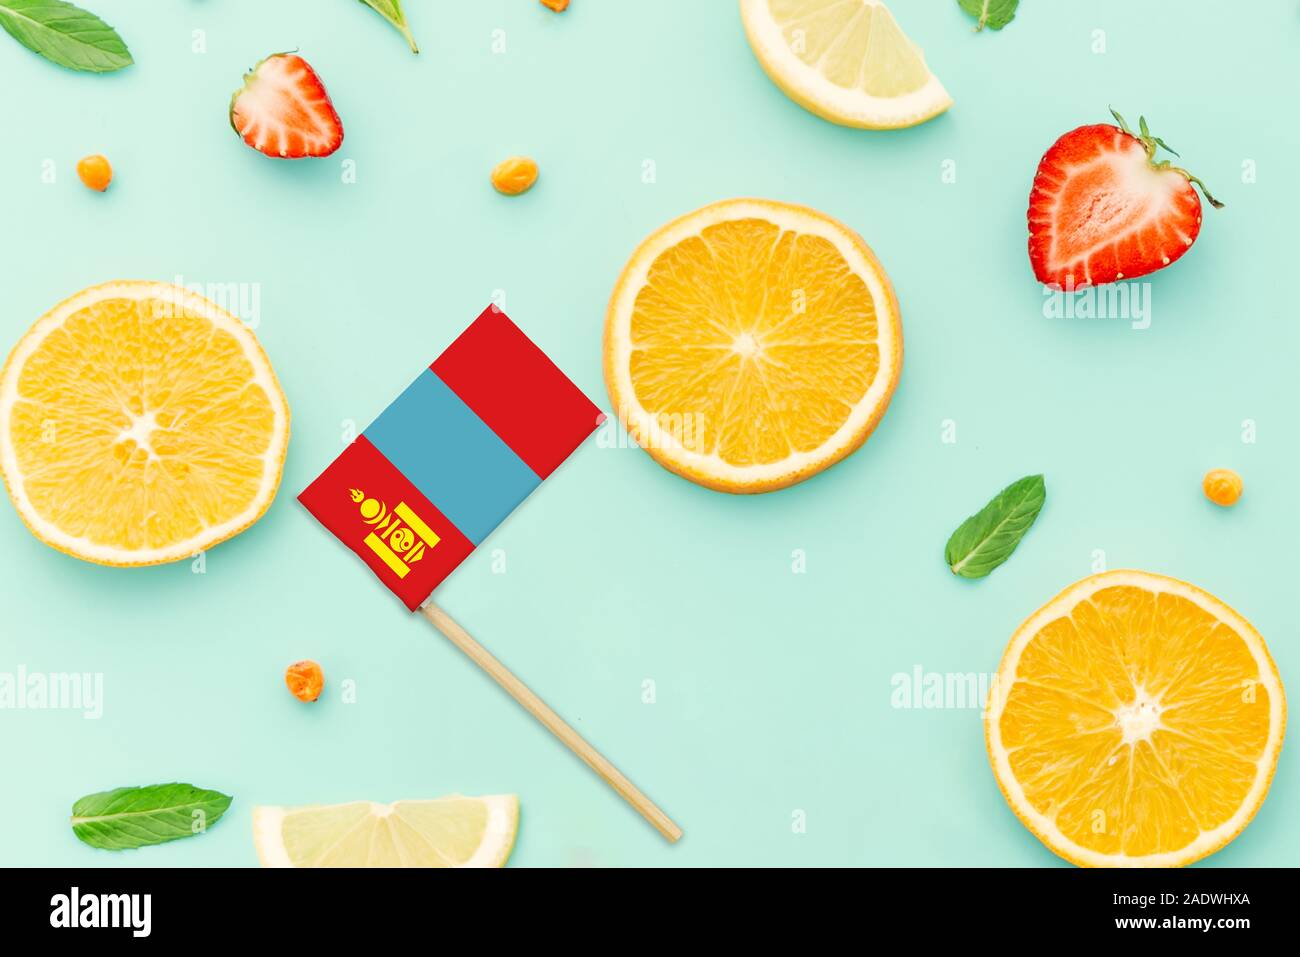 Mongolia Paper Stick Flag. National summer fruits concept, local food market. Vegetarian theme. Stock Photo